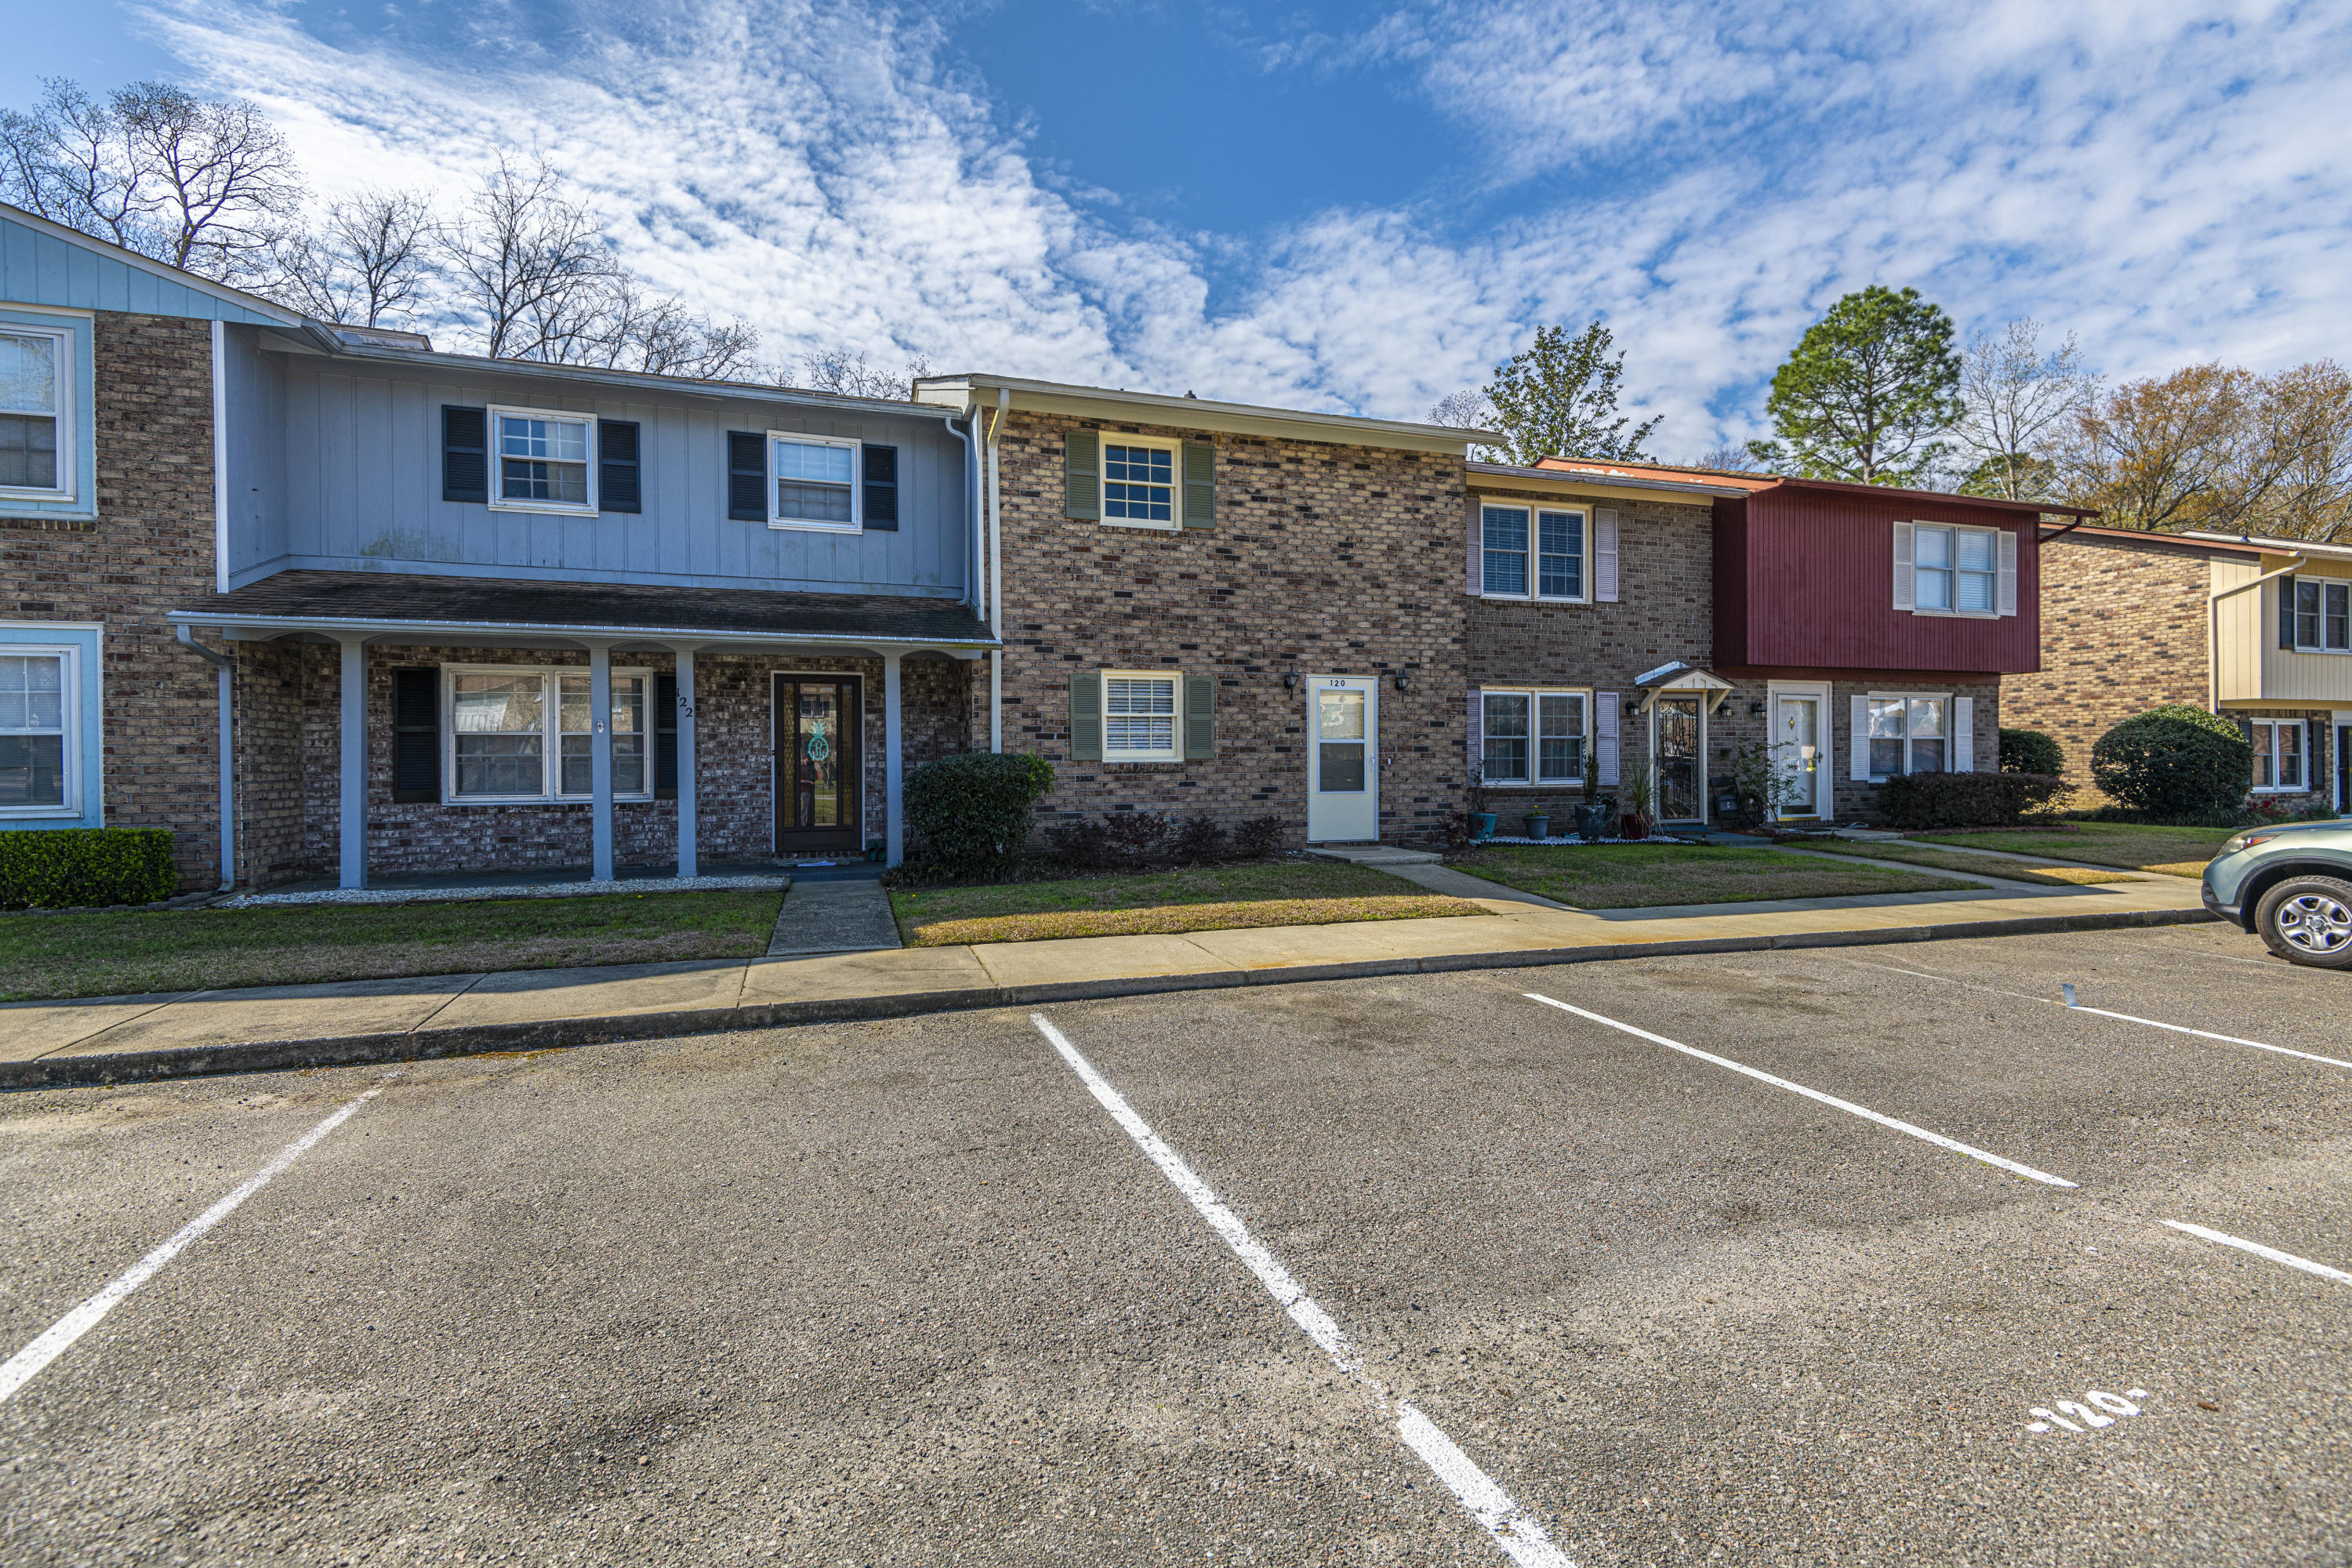 Foxborough Town Houses Homes For Sale - 120 Brush, Goose Creek, SC - 30